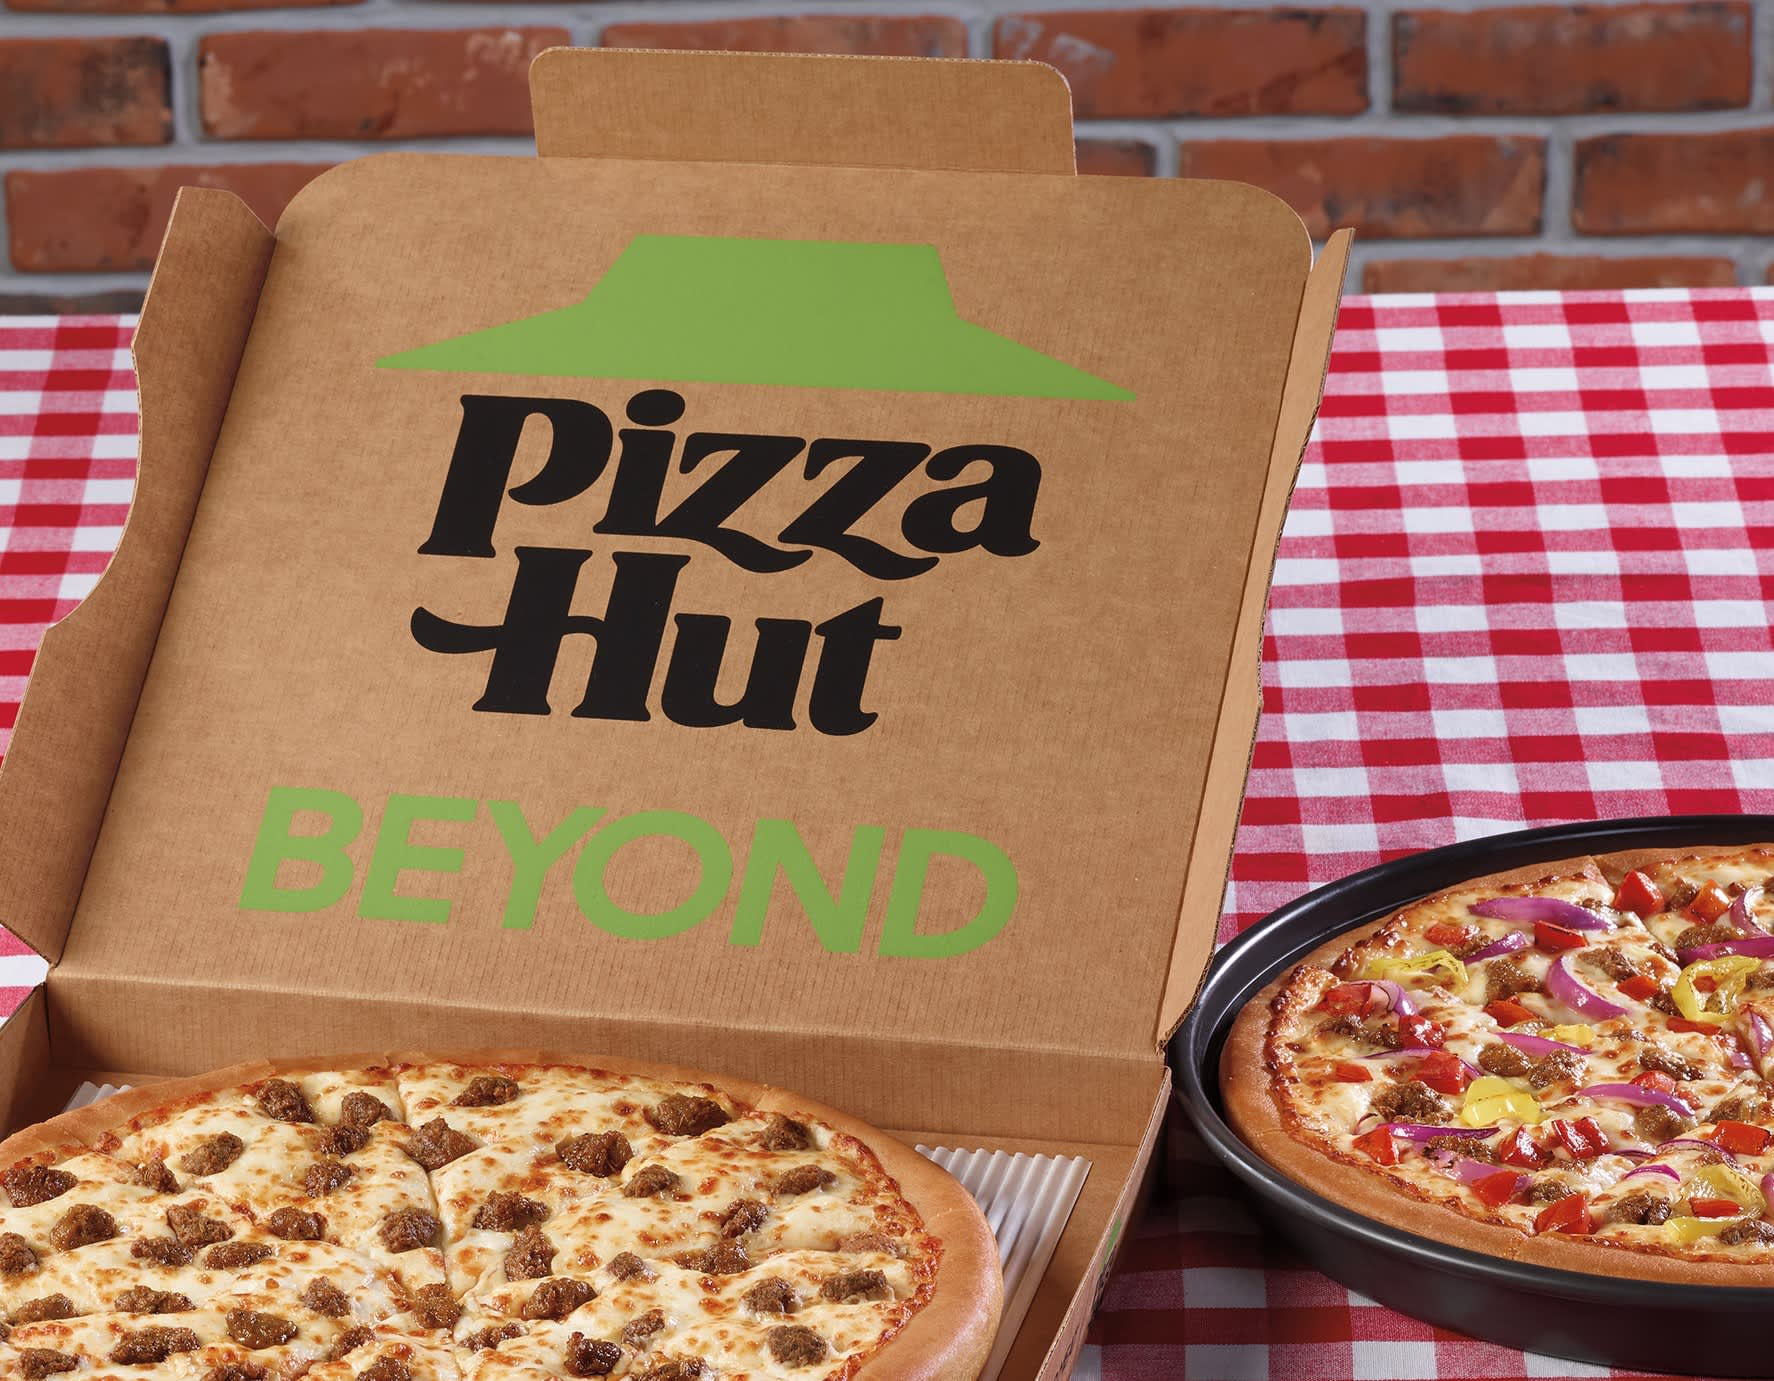 Pizza Hut to launch Beyond Meat sausage topping in the U.S. – CNBC